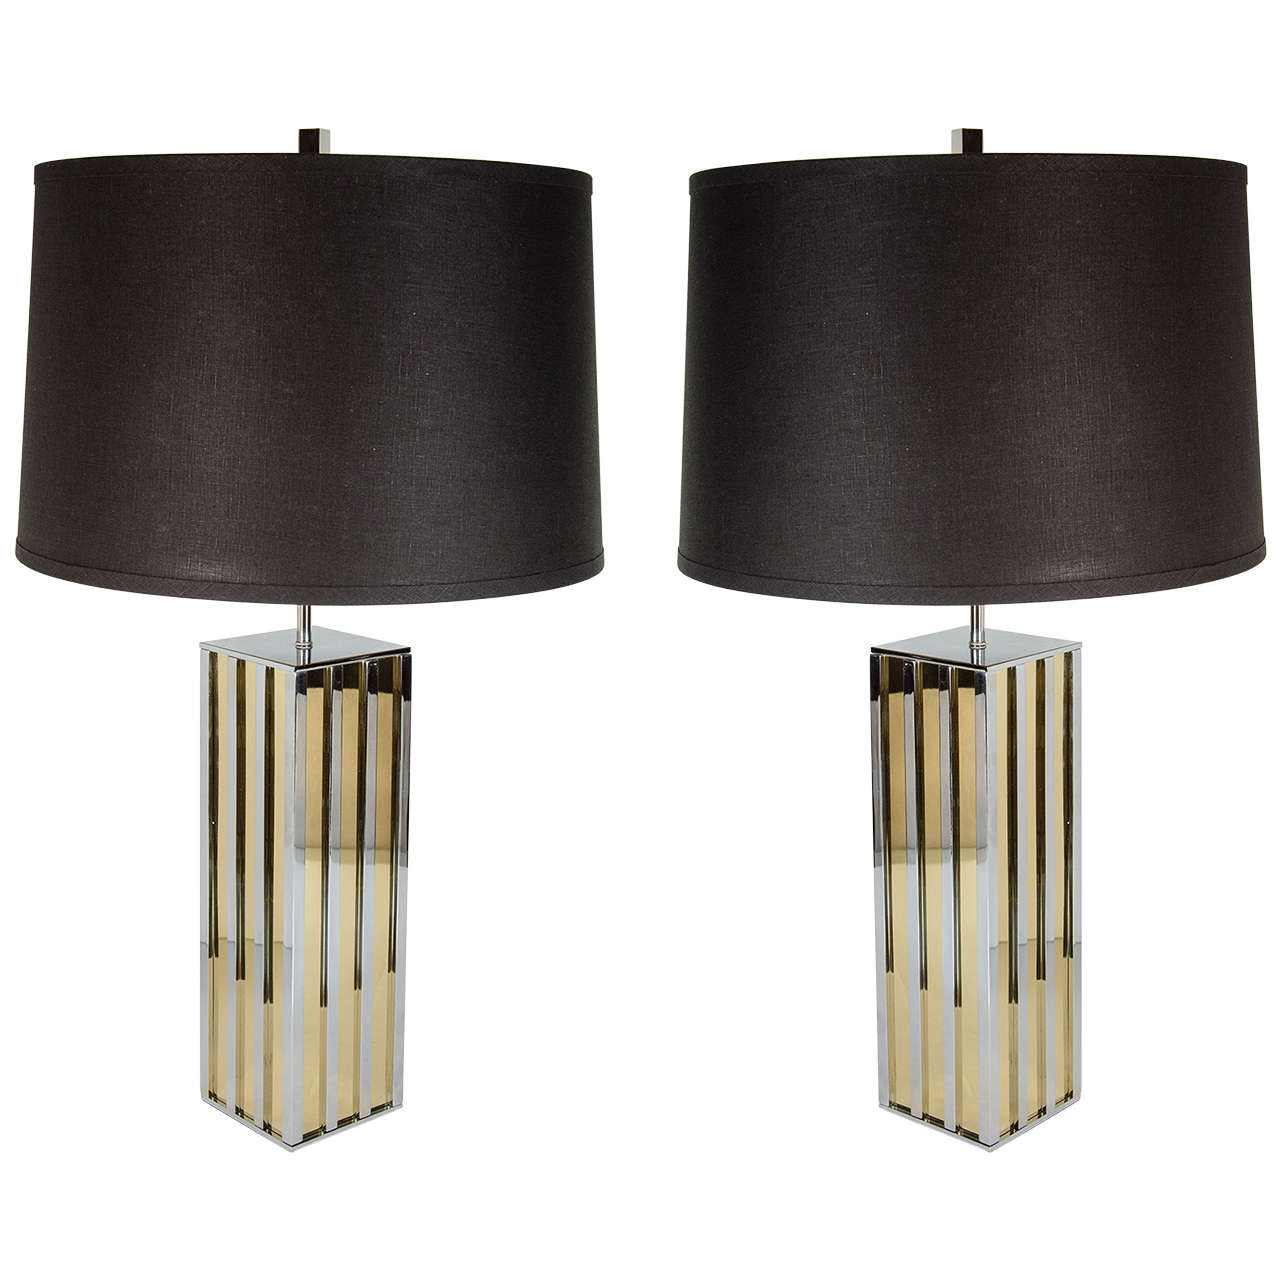 ultra chic pair of mid century modern table lamps in the